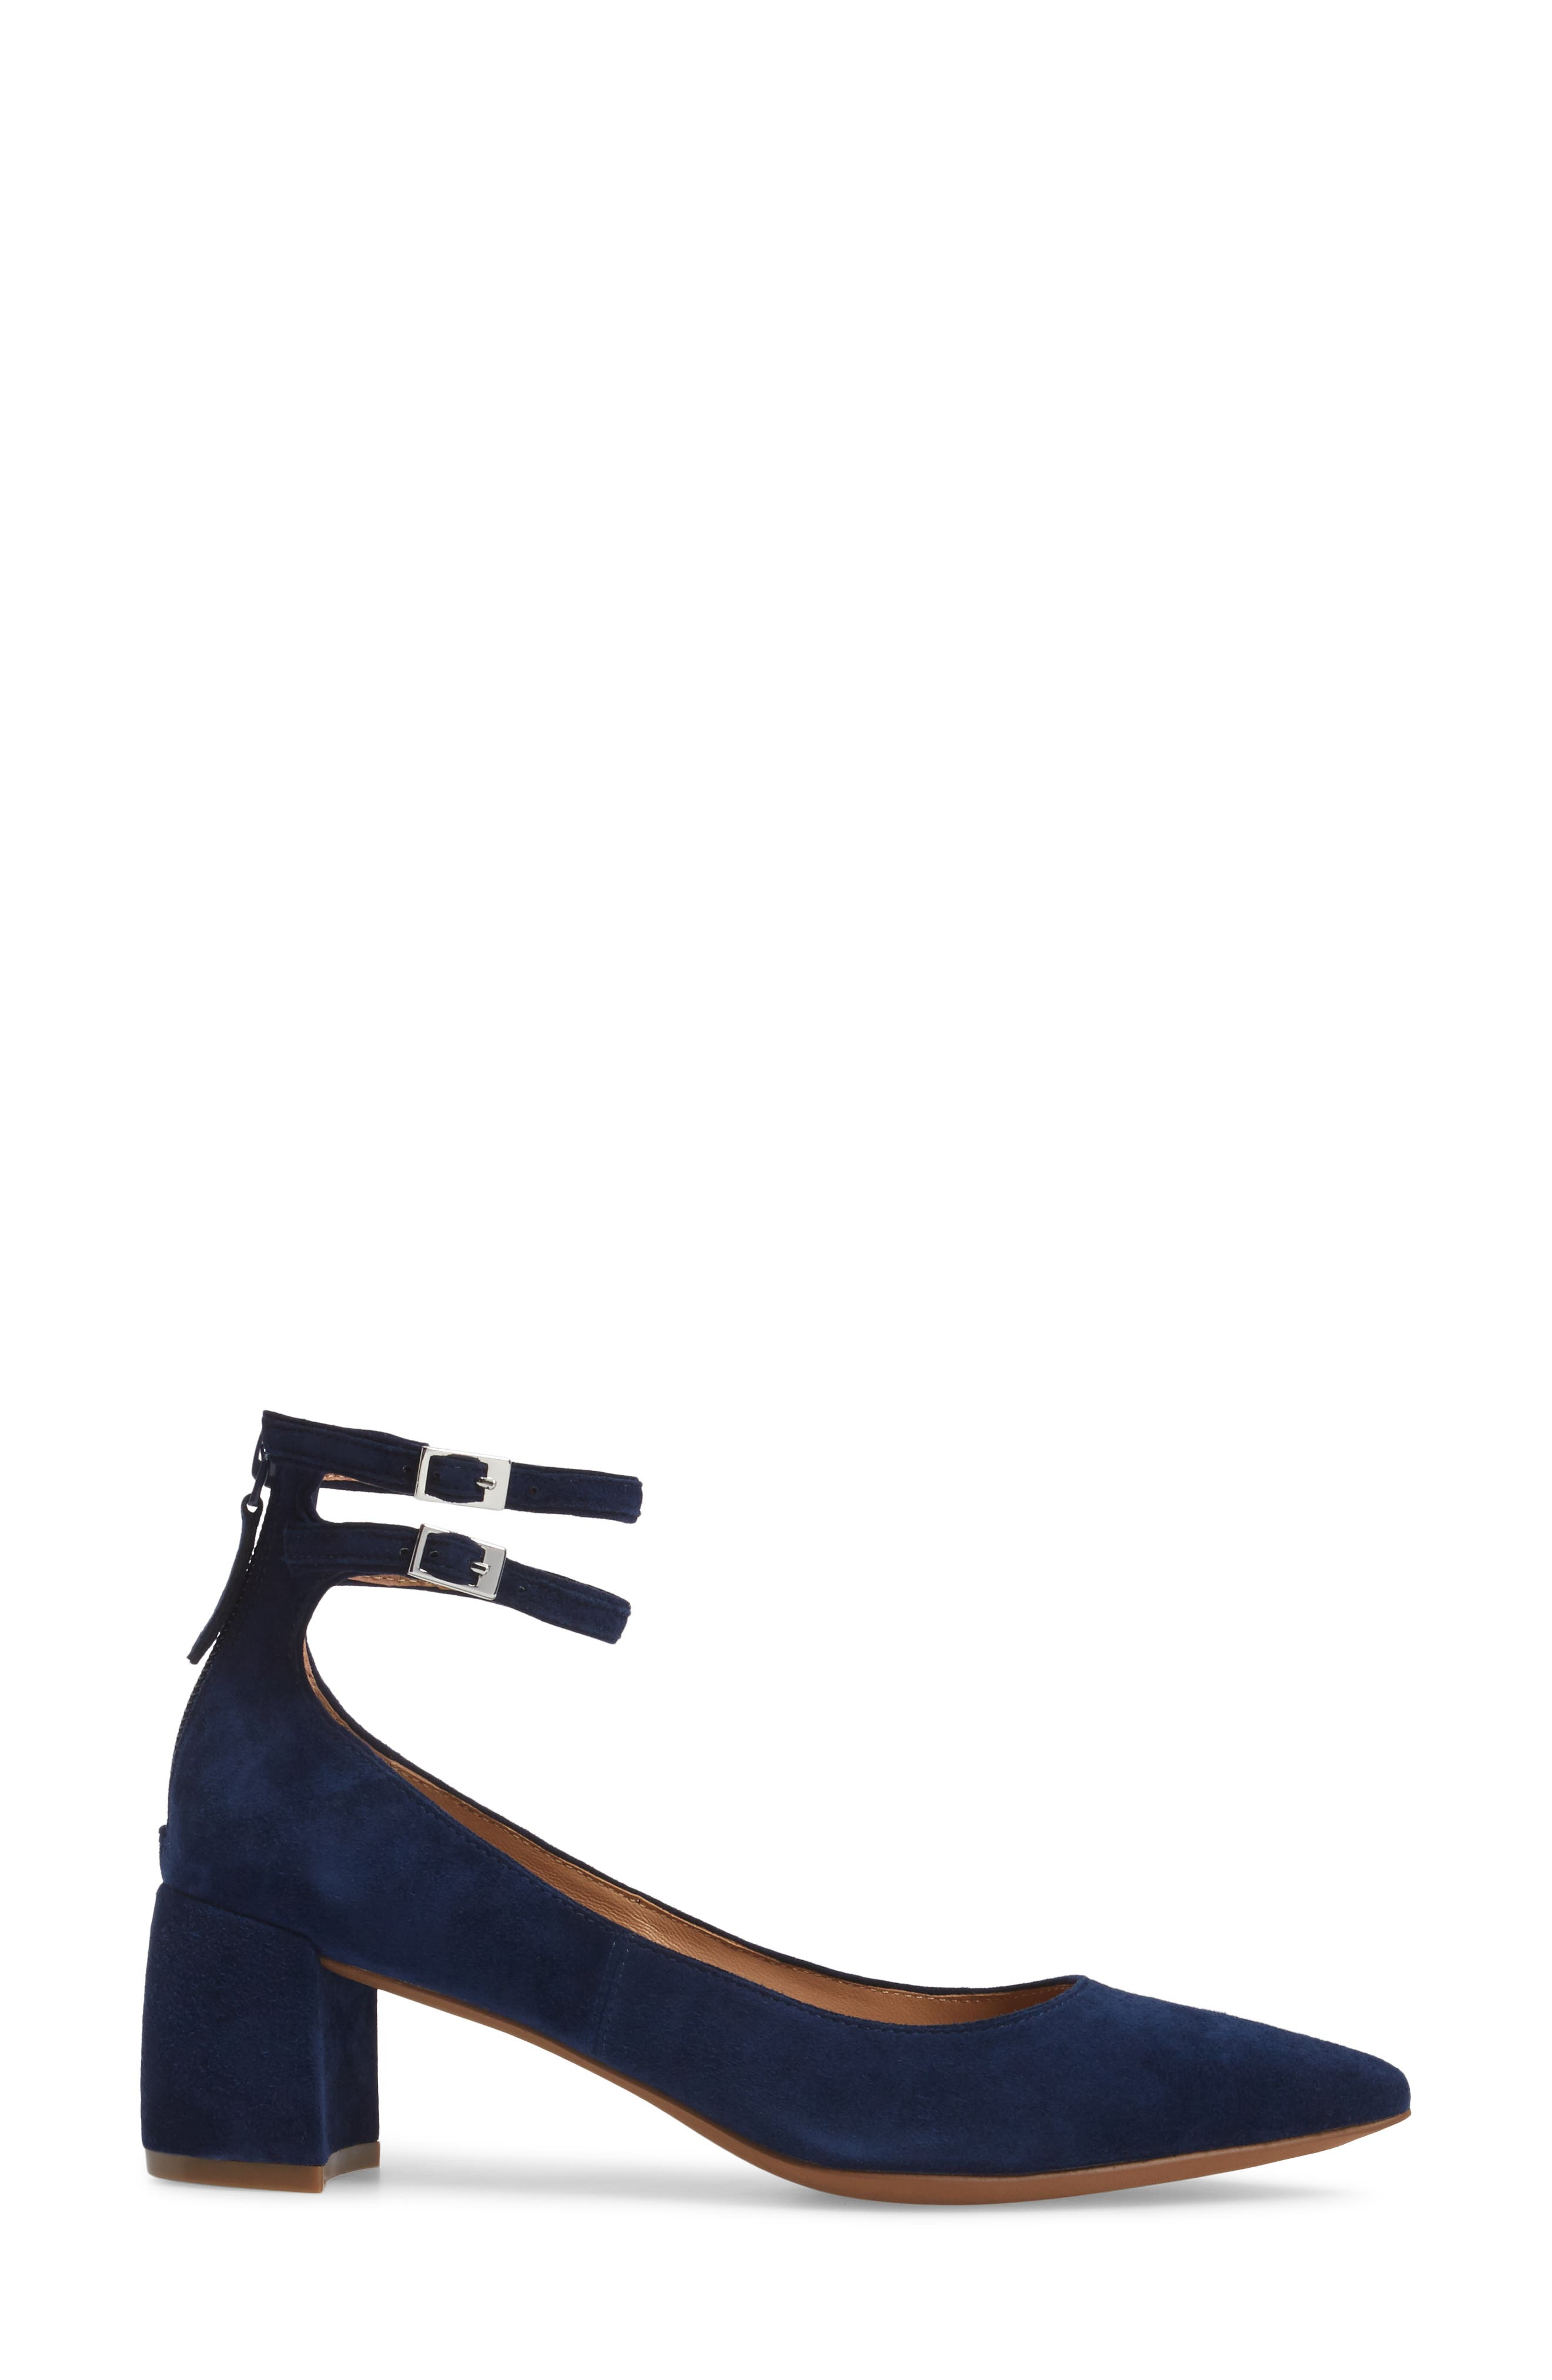 'Noel' Pointy Toe Ankle Strap Pump,                             Alternate thumbnail 3, color,                             412